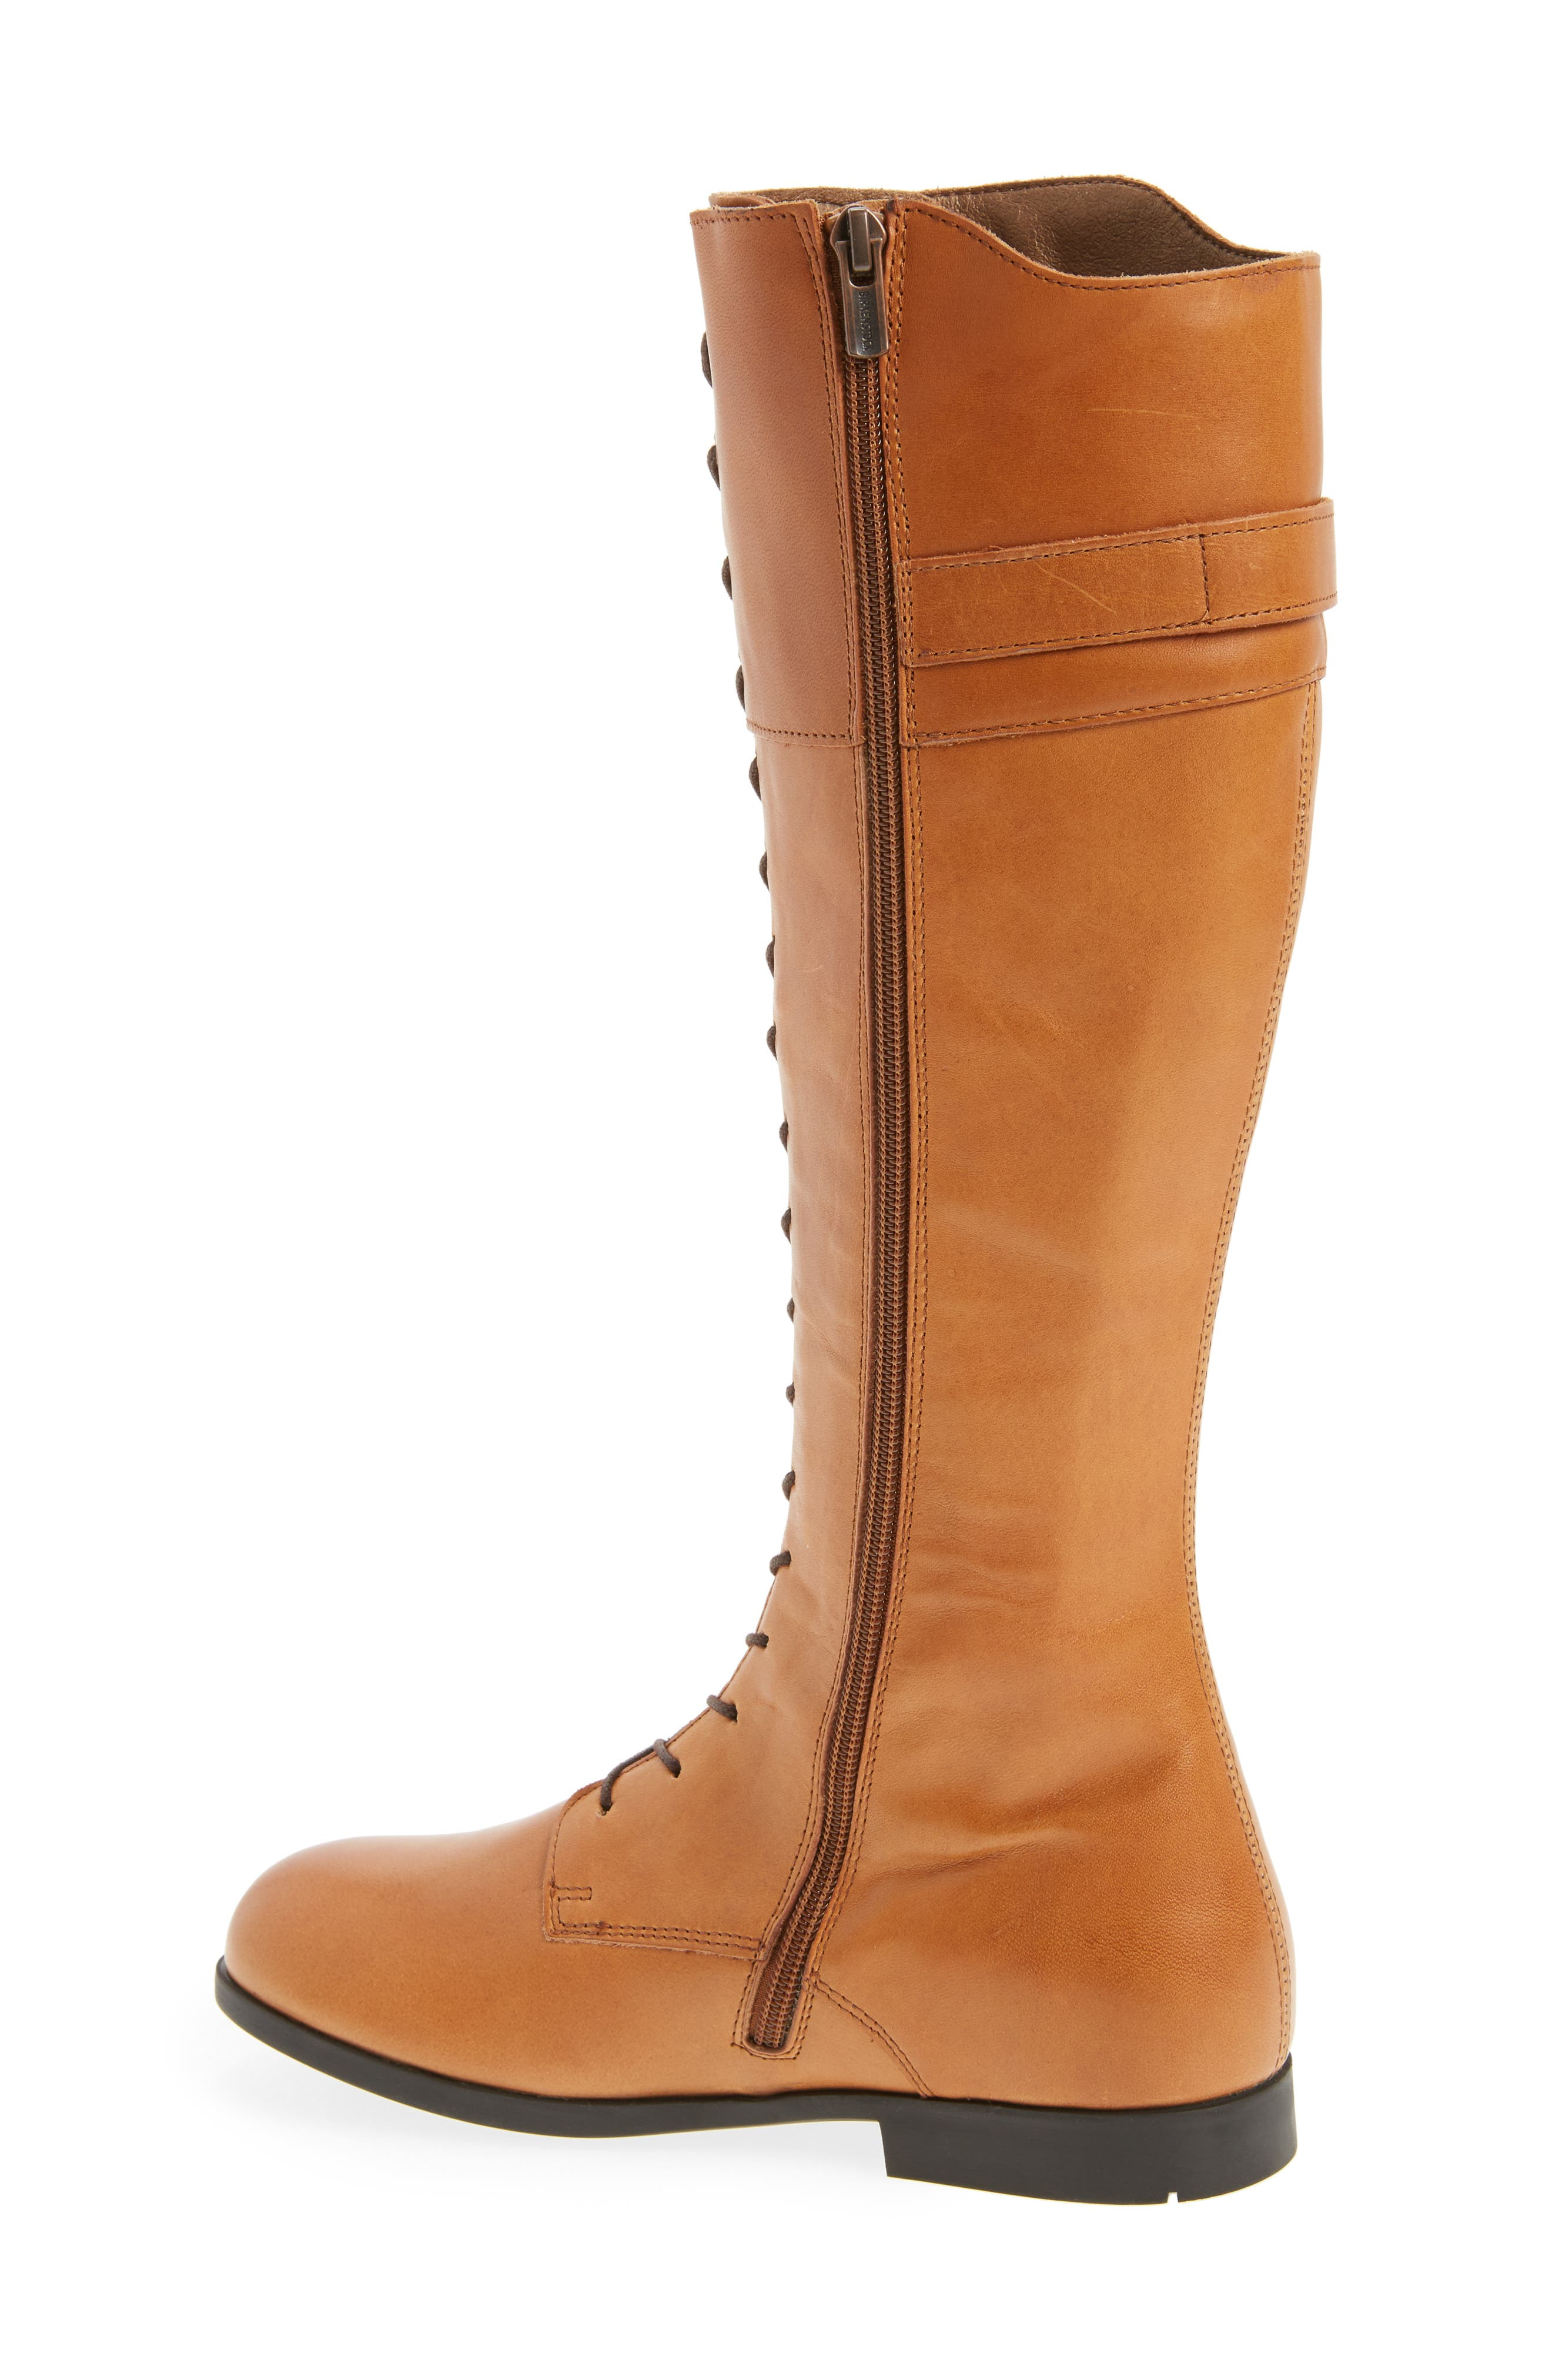 Longford Knee-High Lace-Up Boot,                             Alternate thumbnail 2, color,                             200